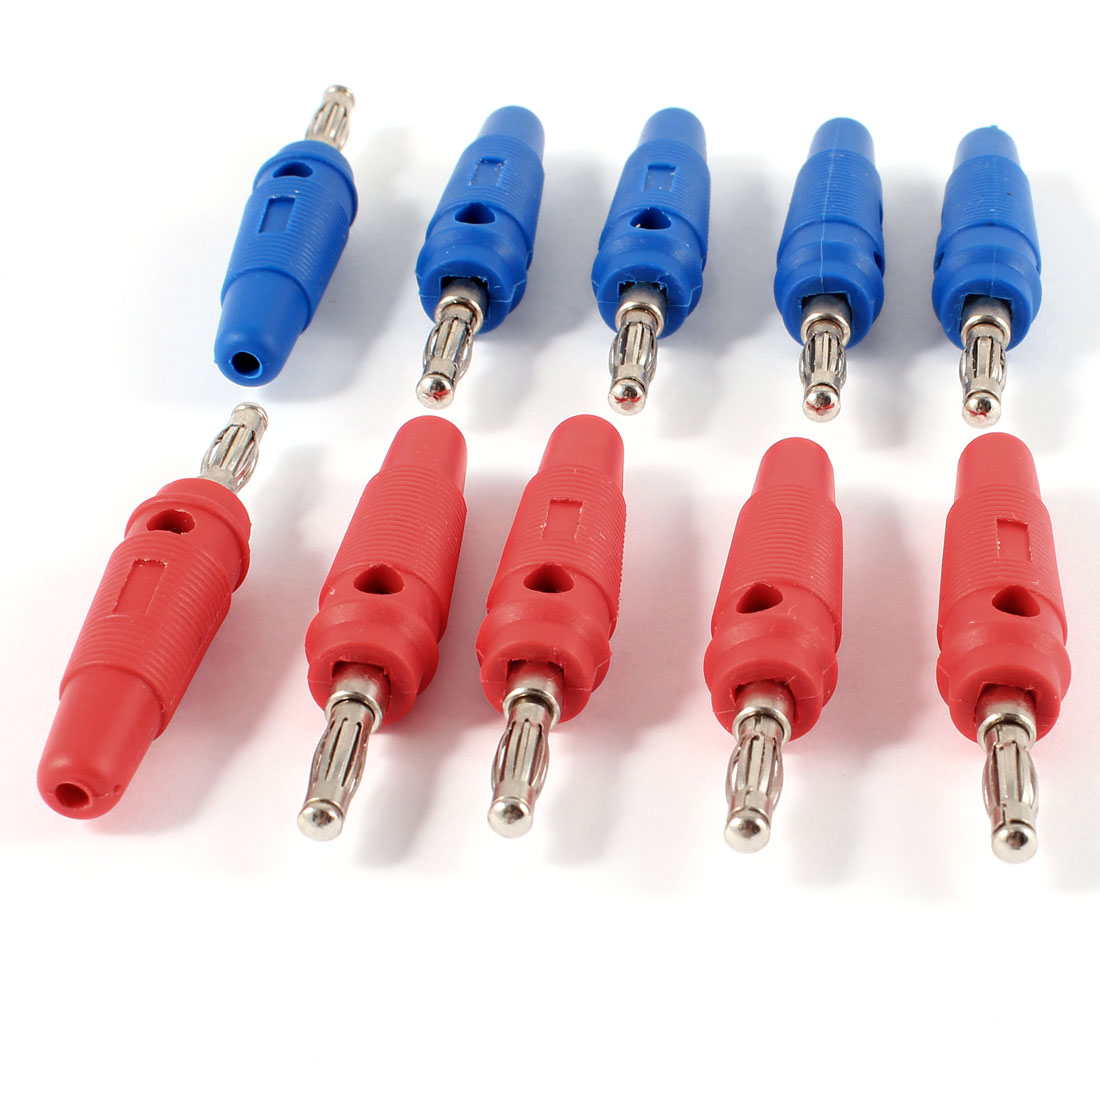 10 Pcs 3mm Audio Speaker Wire Cable Connector Adapter Screw Banana Plug Red Blue